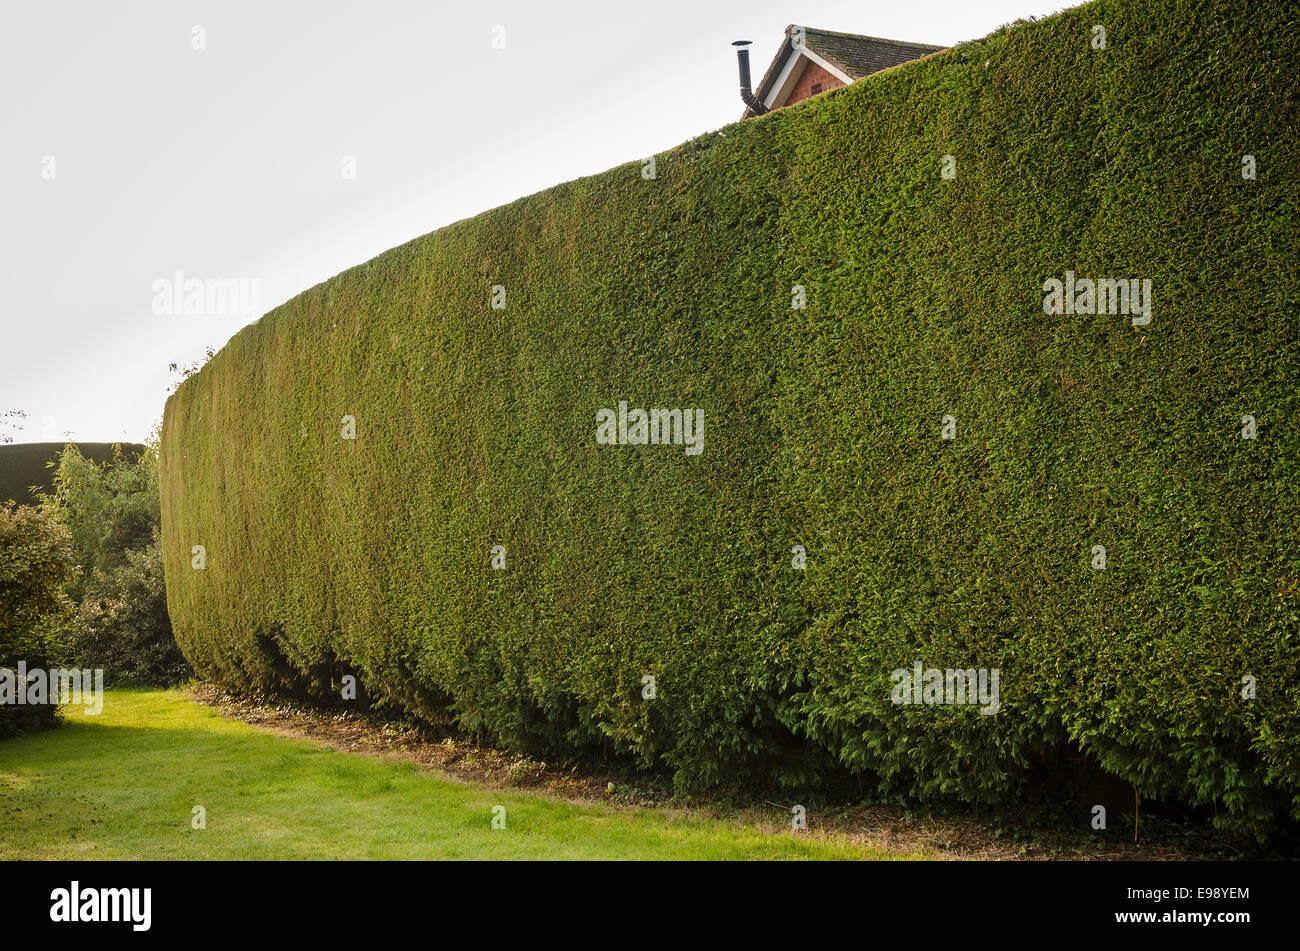 Tall evergreen conifer hedge after annual maintence obscuring unwanted view - Stock Image